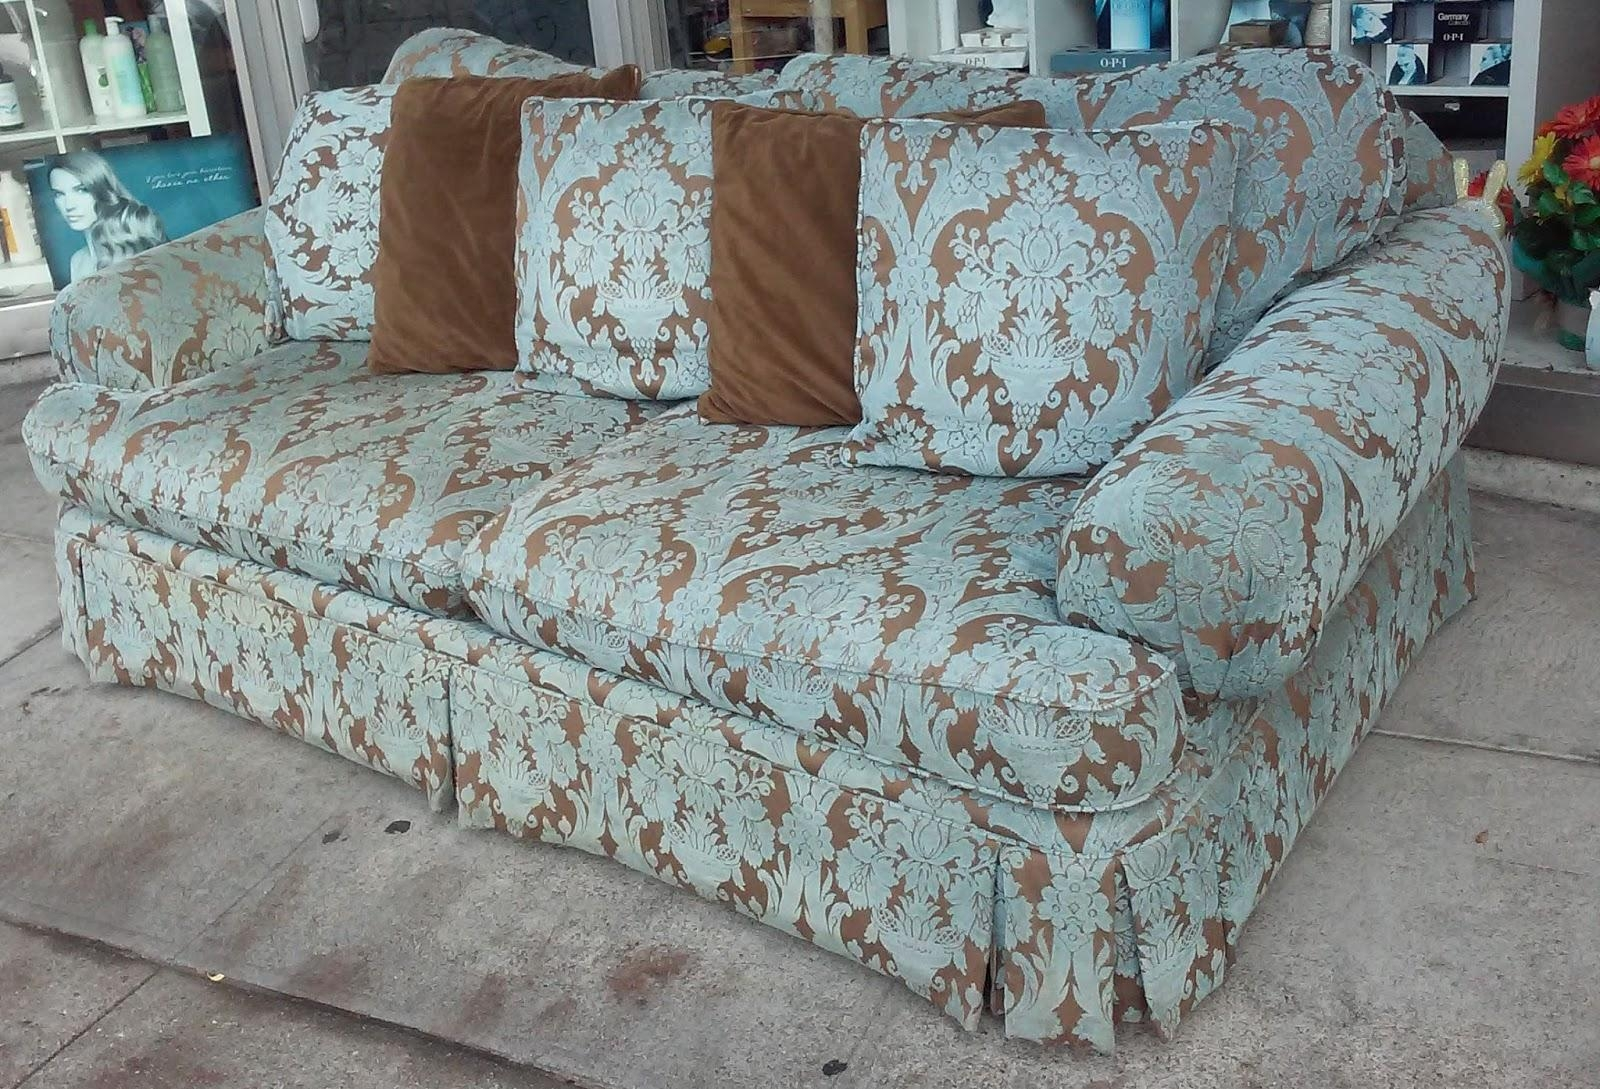 Uhuru Furniture & Collectibles: Sold **reduced** Blue Brocade Sofa intended for Brocade Sofas